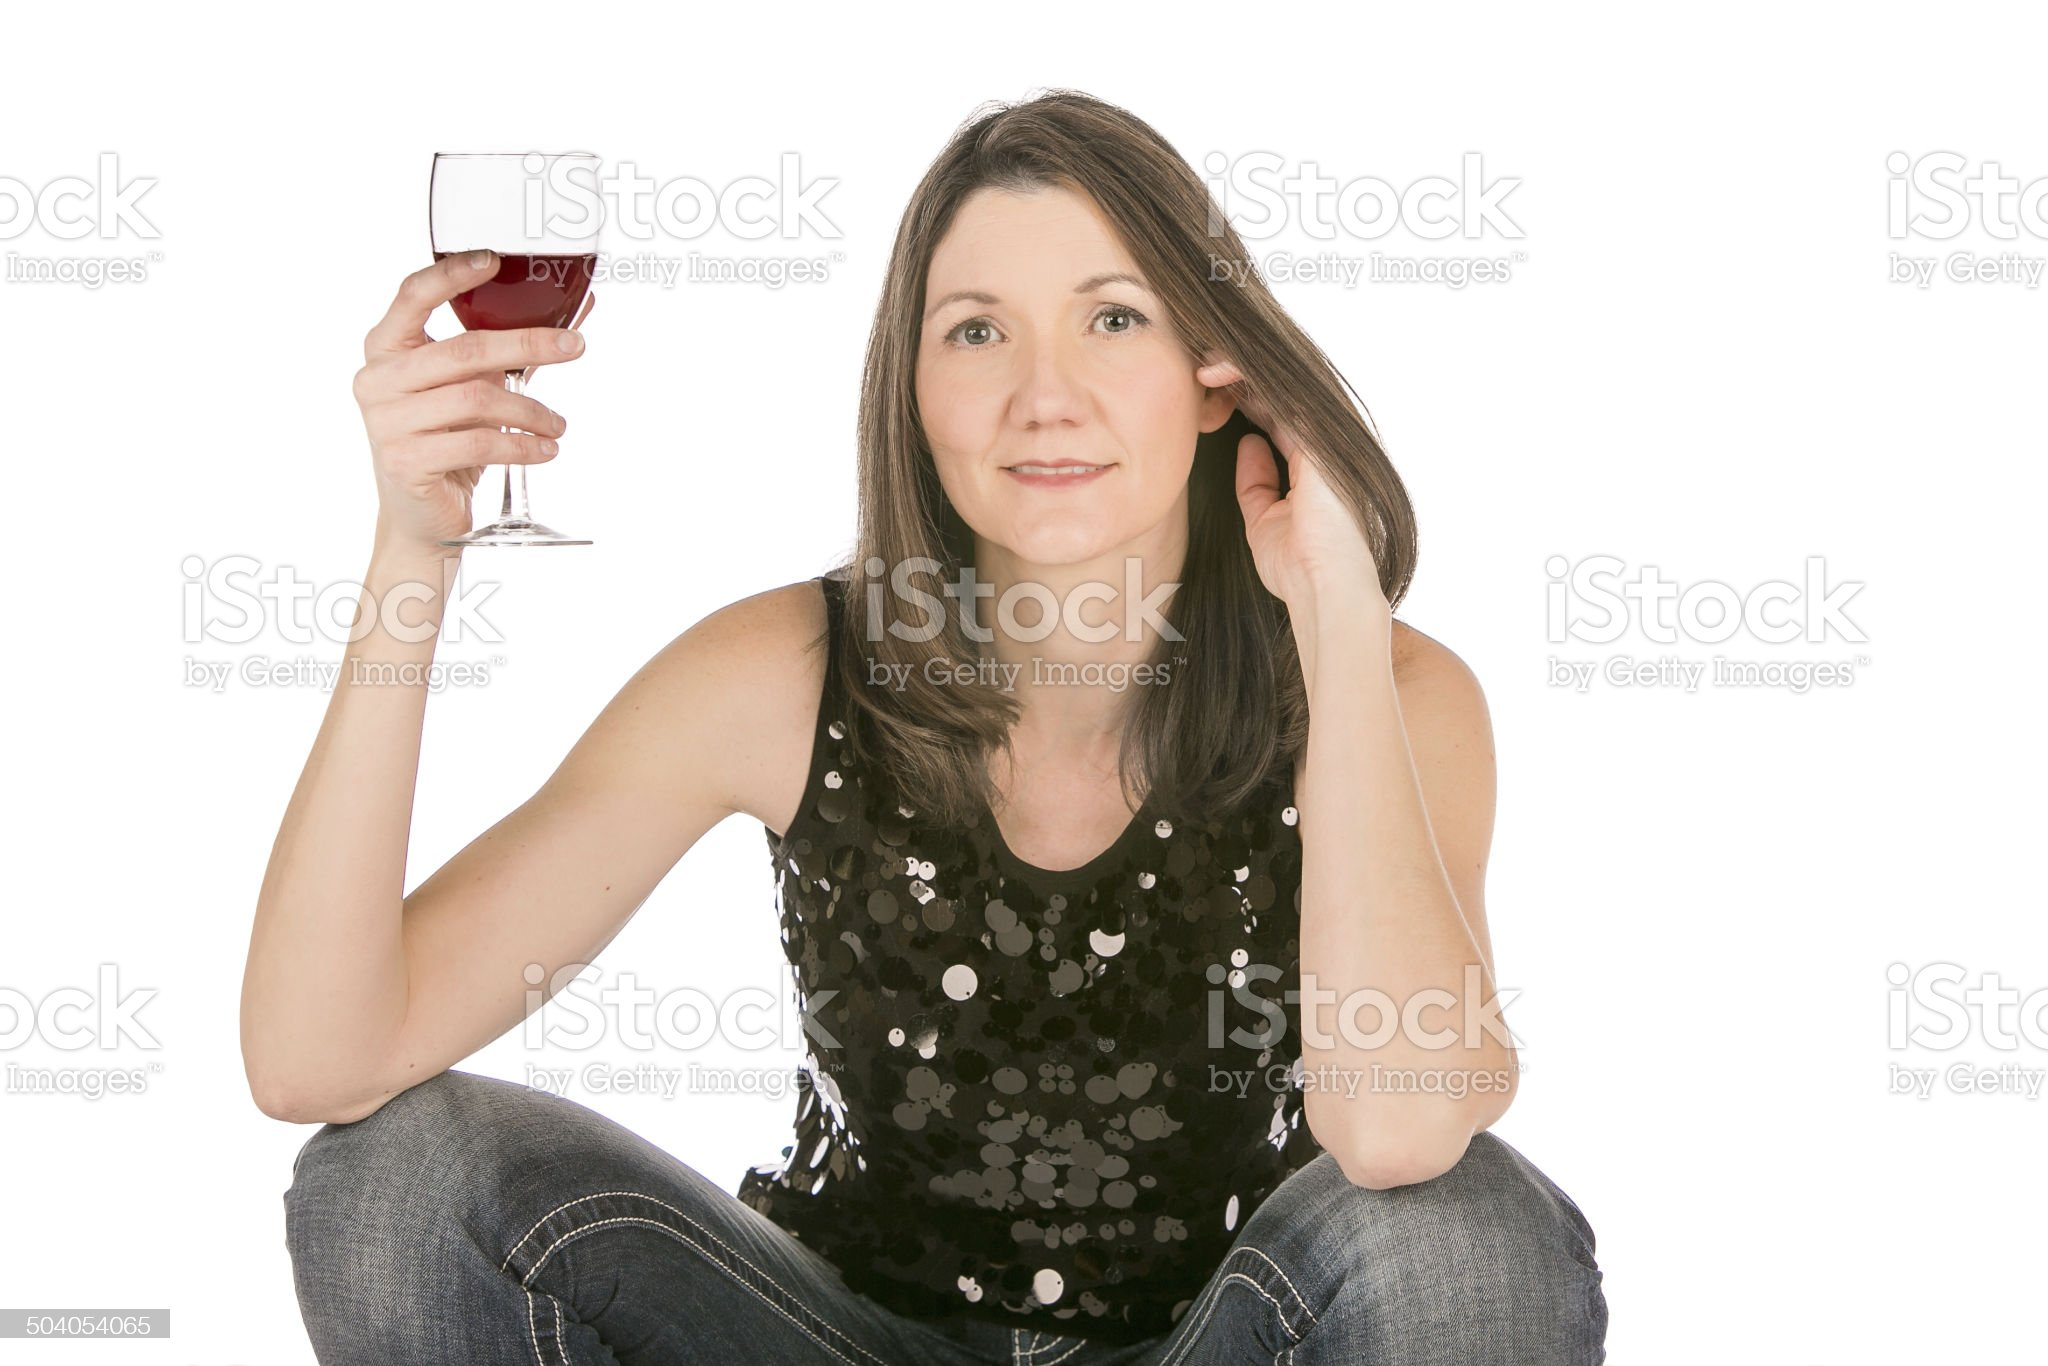 woman holding wine glass casual on white background royalty-free stock photo